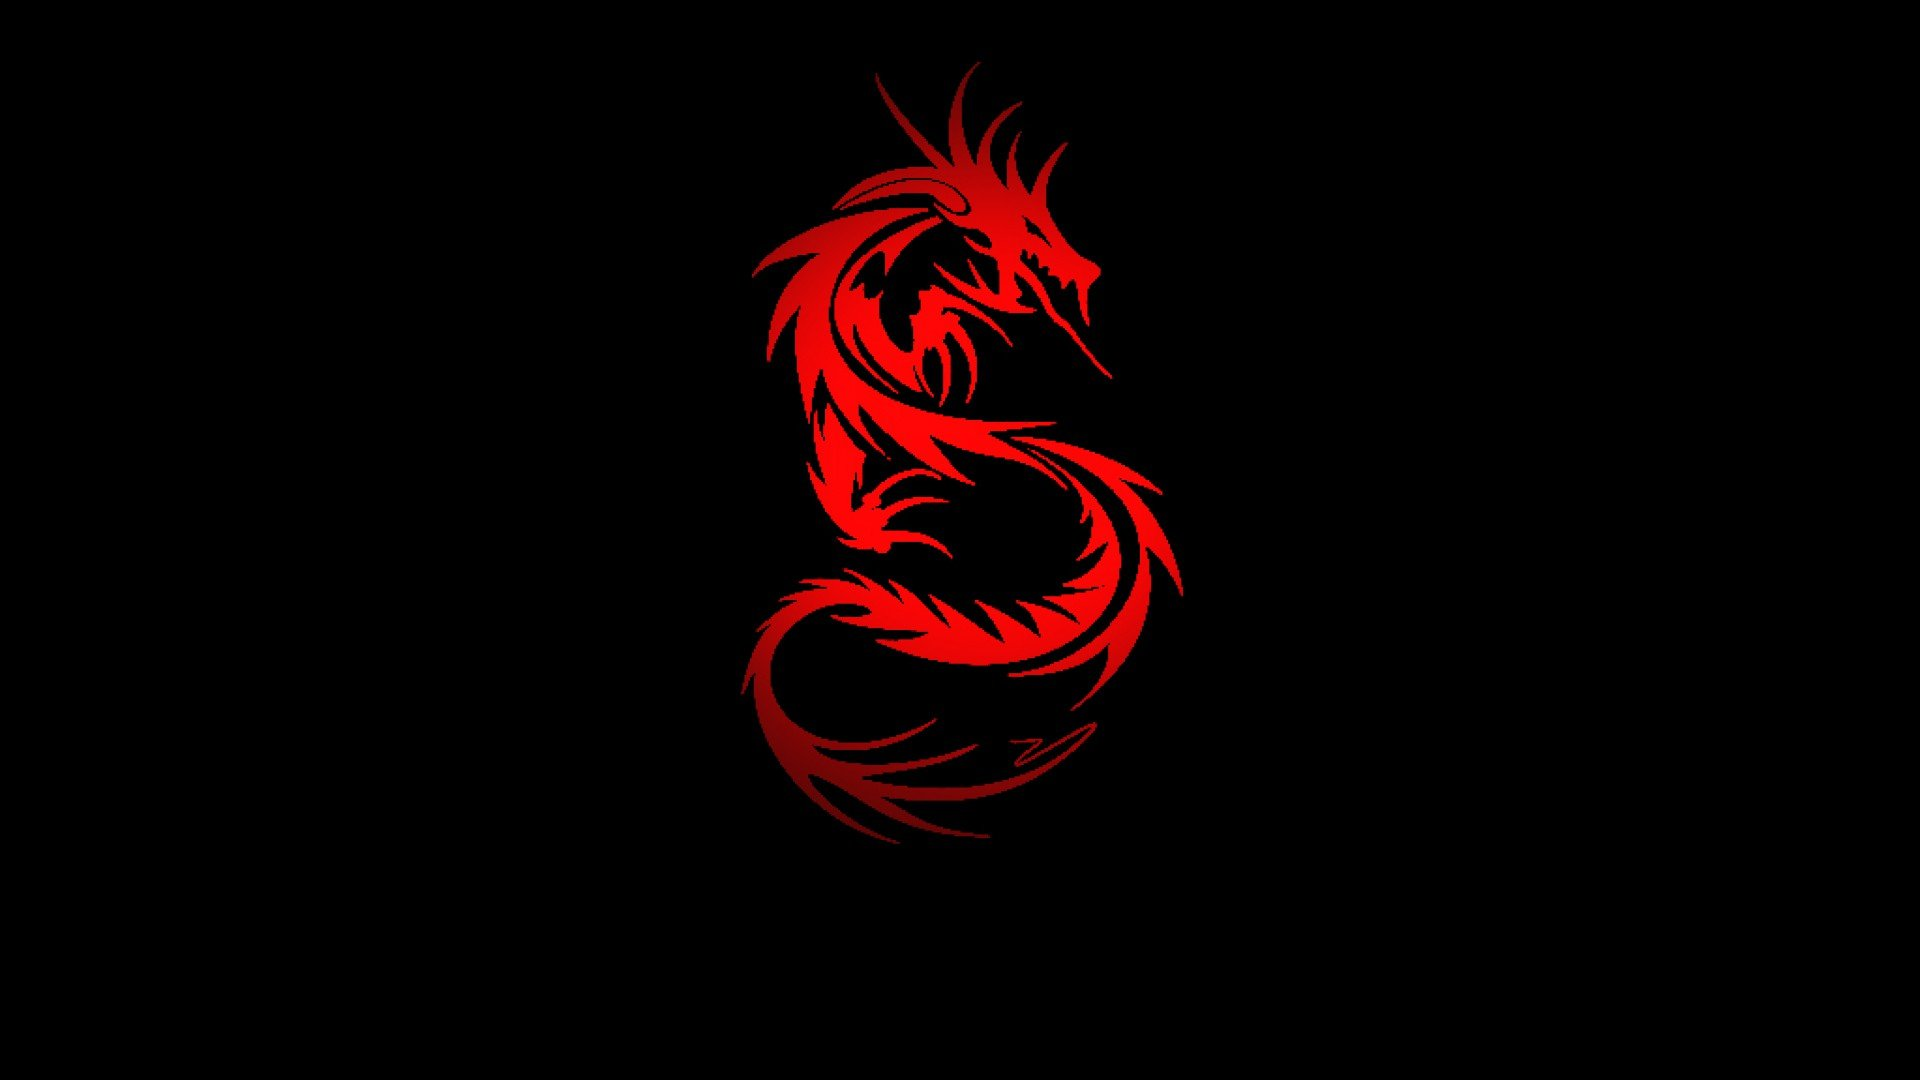 Red Dragon wallpapers HD free - 562608